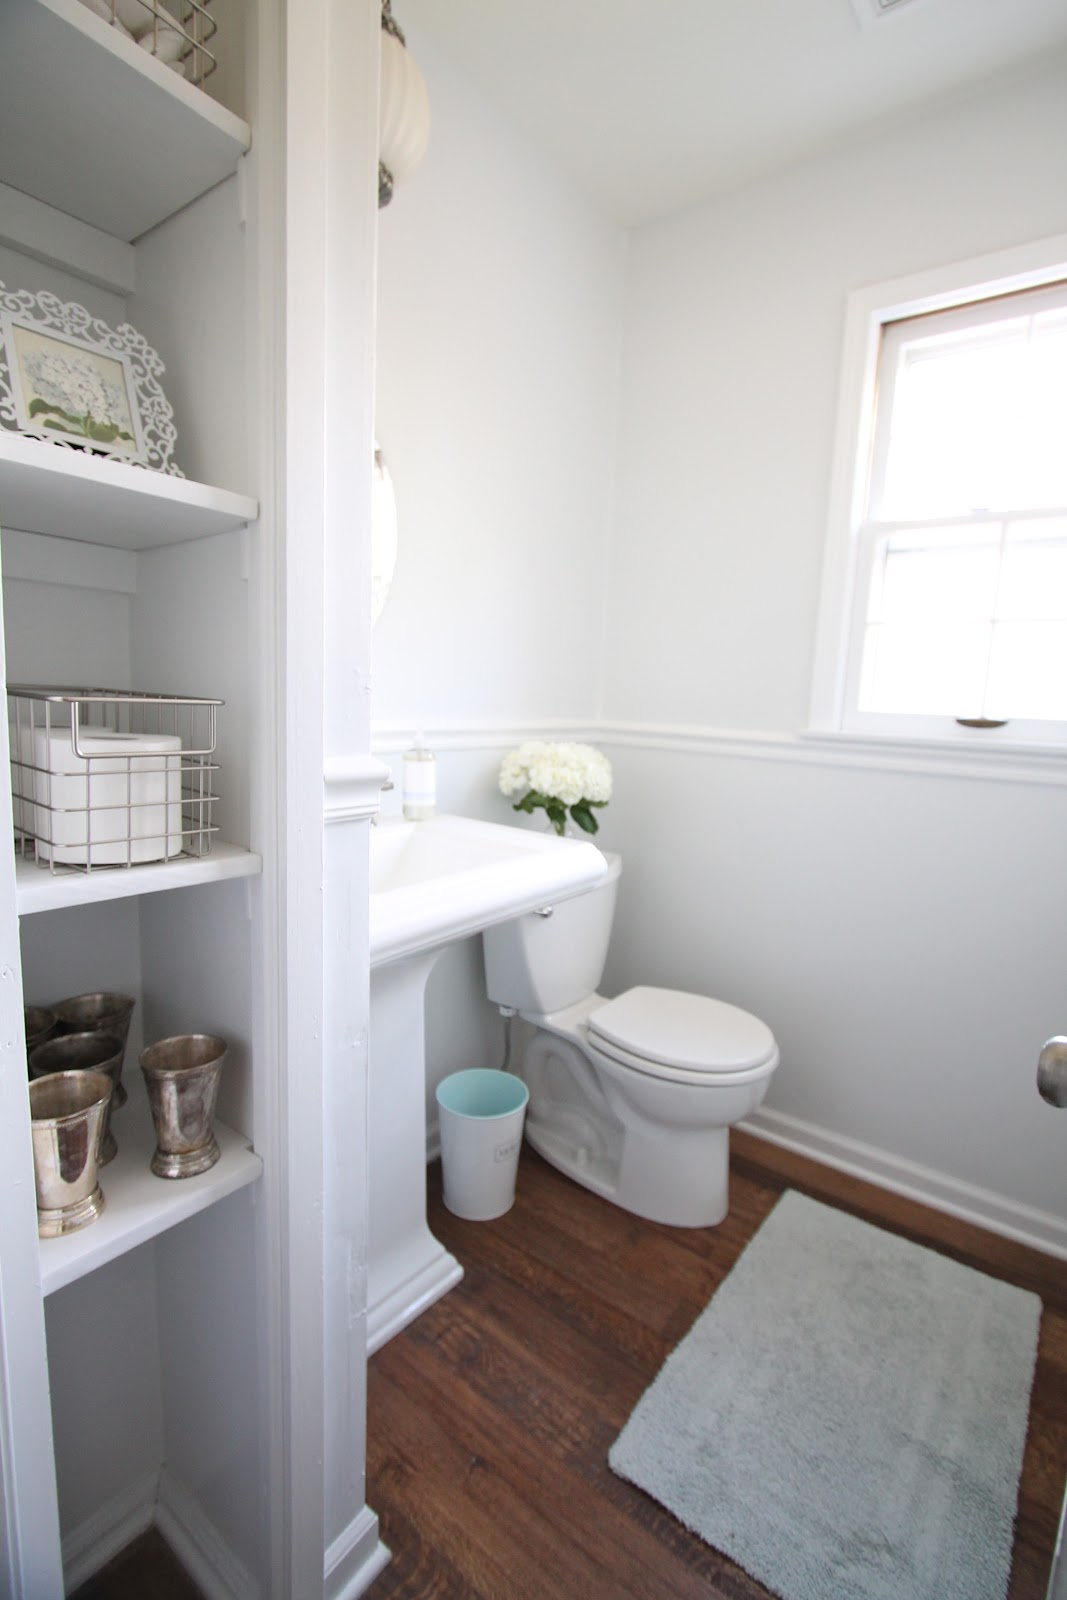 Diy bathroom remodel julie blanner for Home bathroom remodel